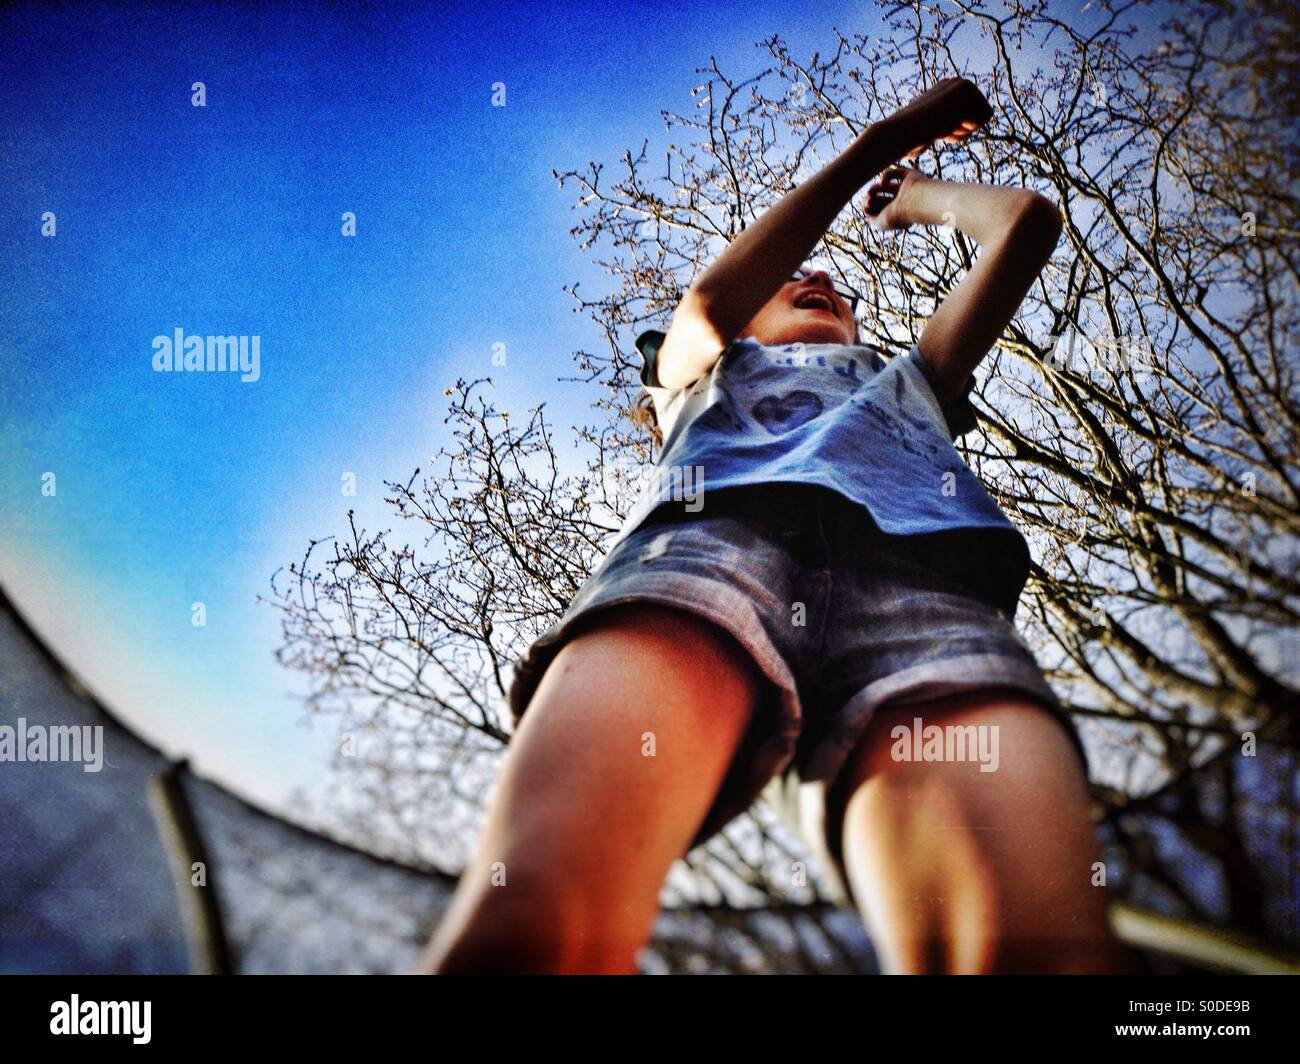 Young girl bouncing on trampoline - Stock Image